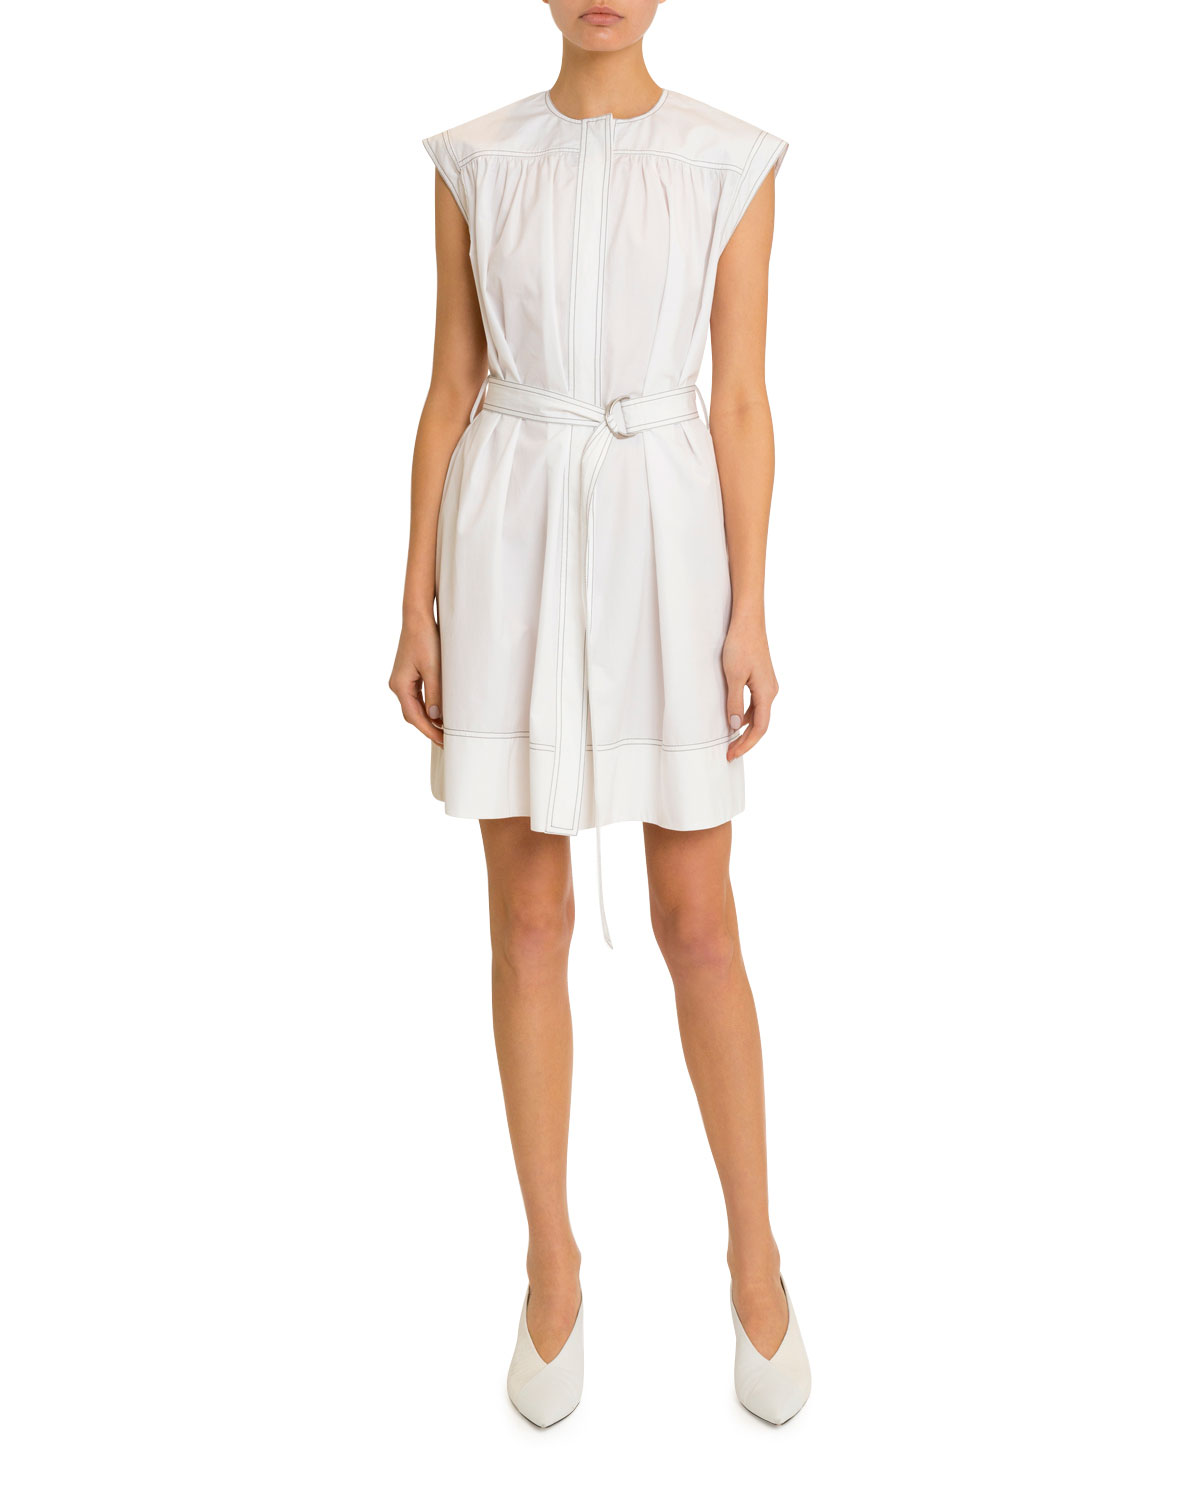 Givenchy Belted Topstitched Heavy Cotton Dress